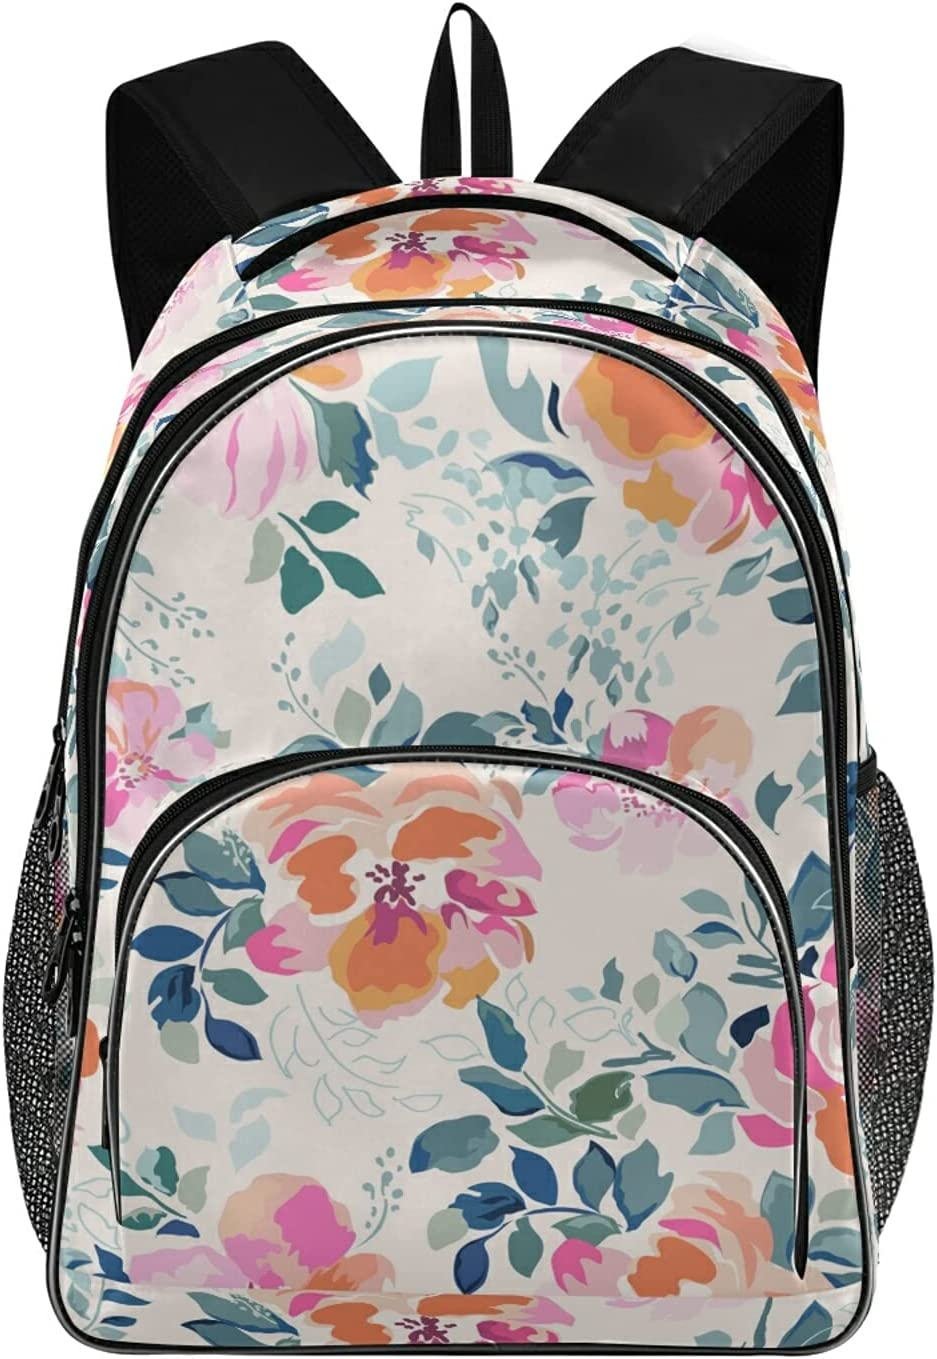 School Backpack Bookbag Laptop Daypack for Girls Women Animer and price revision Max 74% OFF Schoolbag